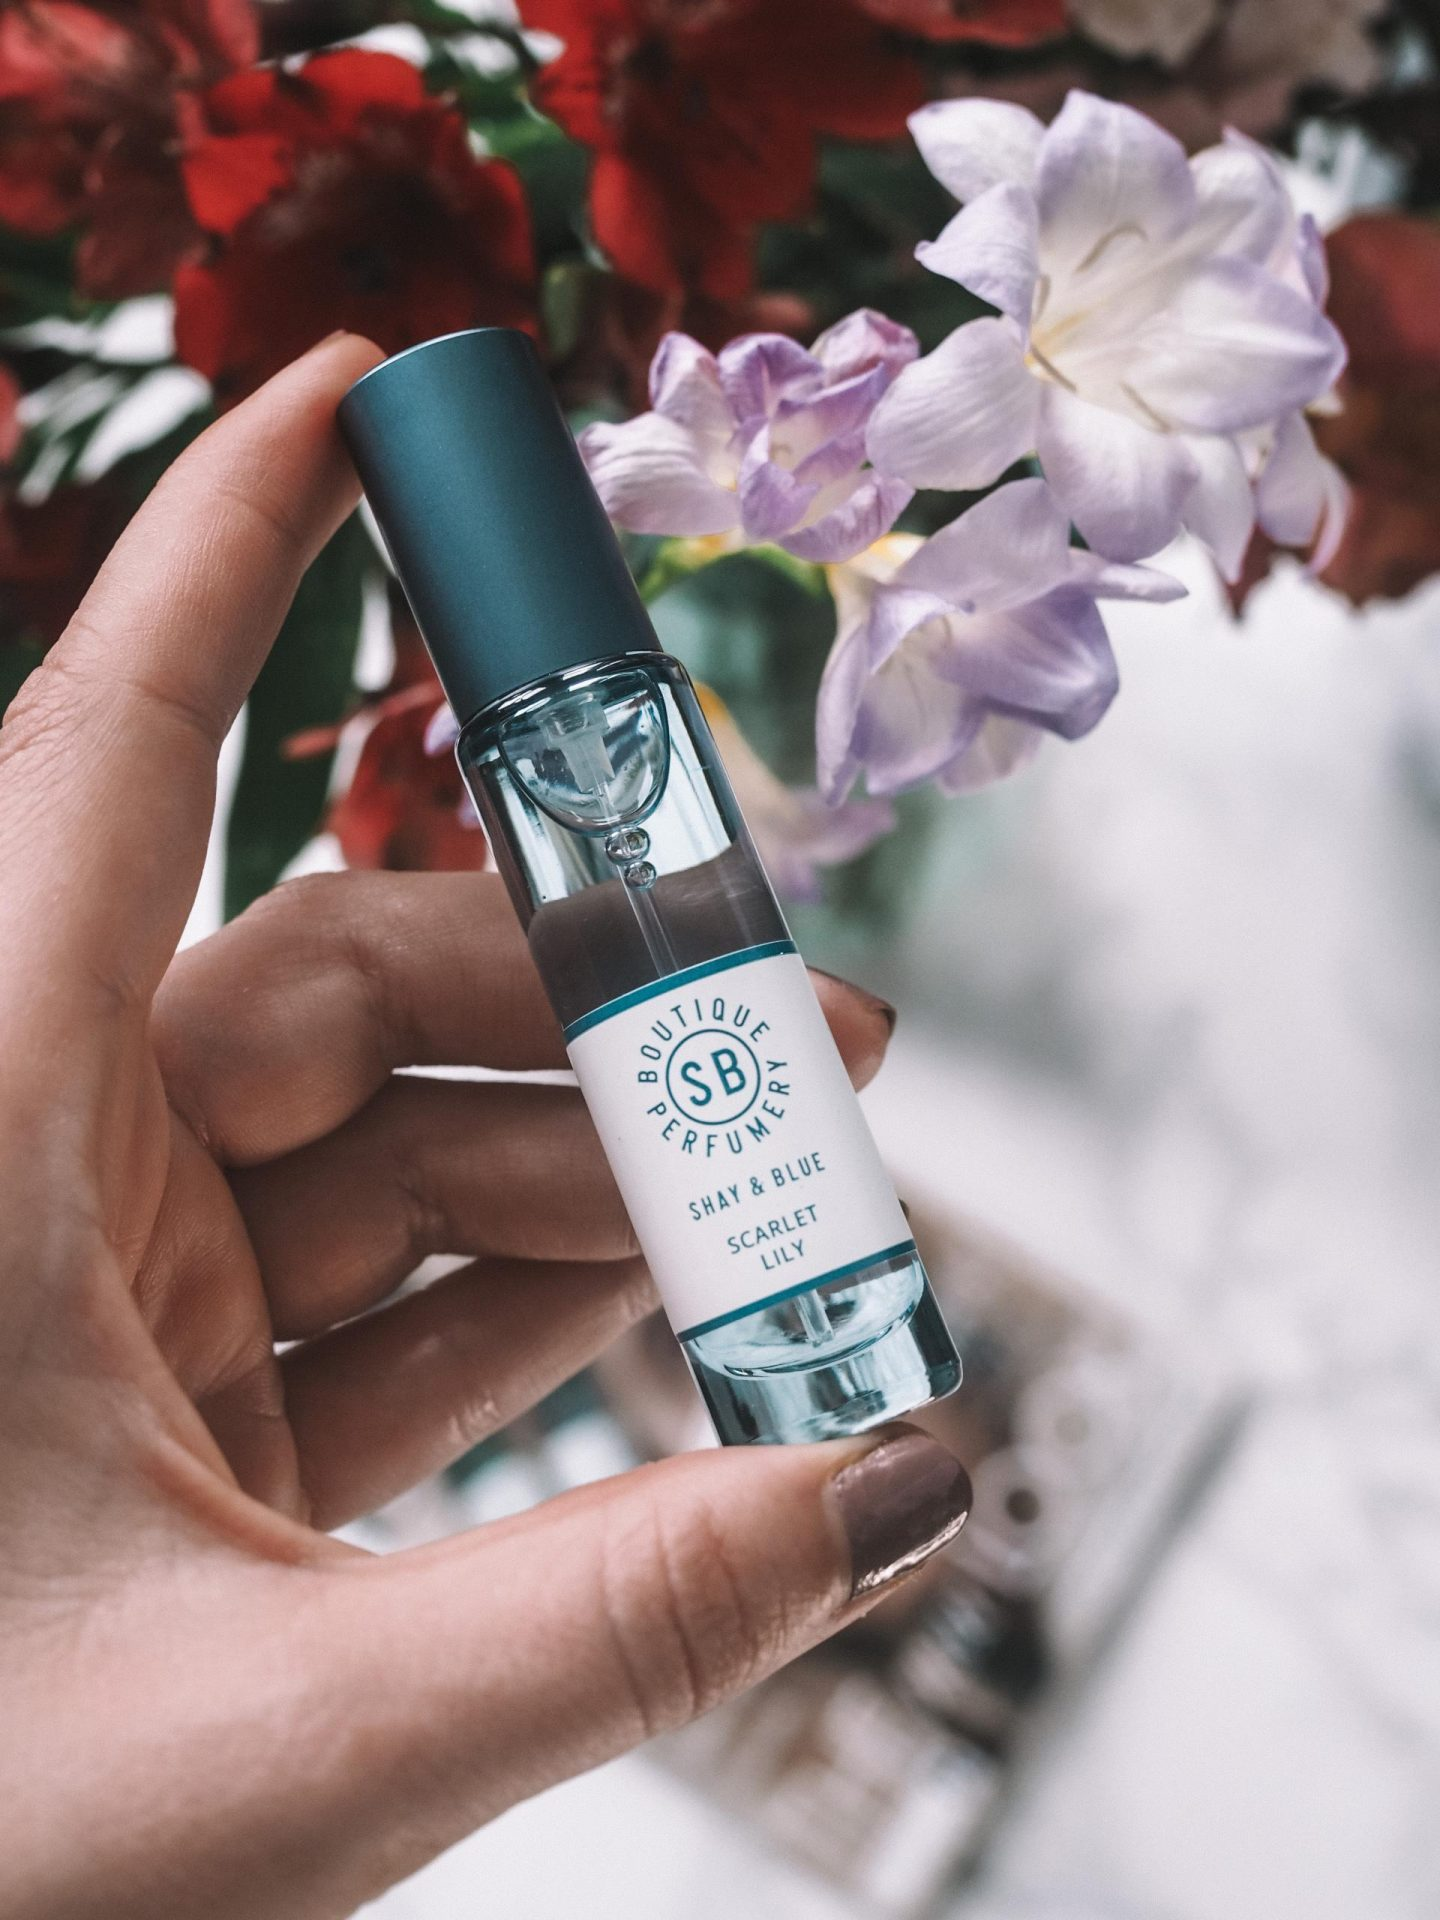 Shay & Blue Scarlet Lily perfume